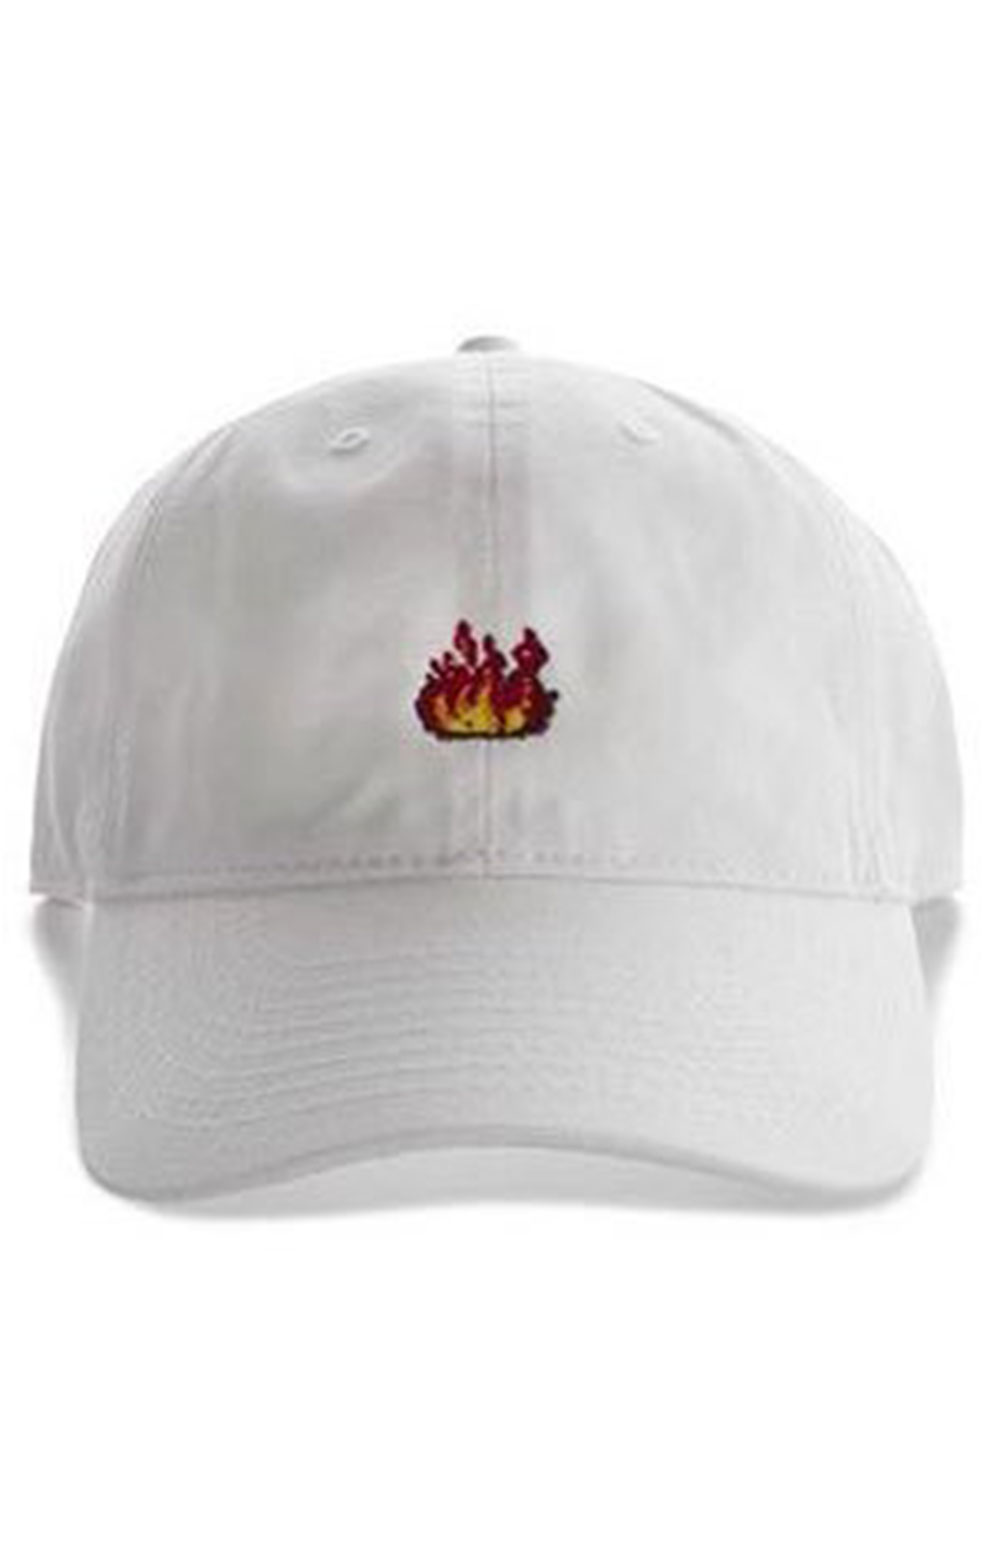 Flames Dad Hat - White